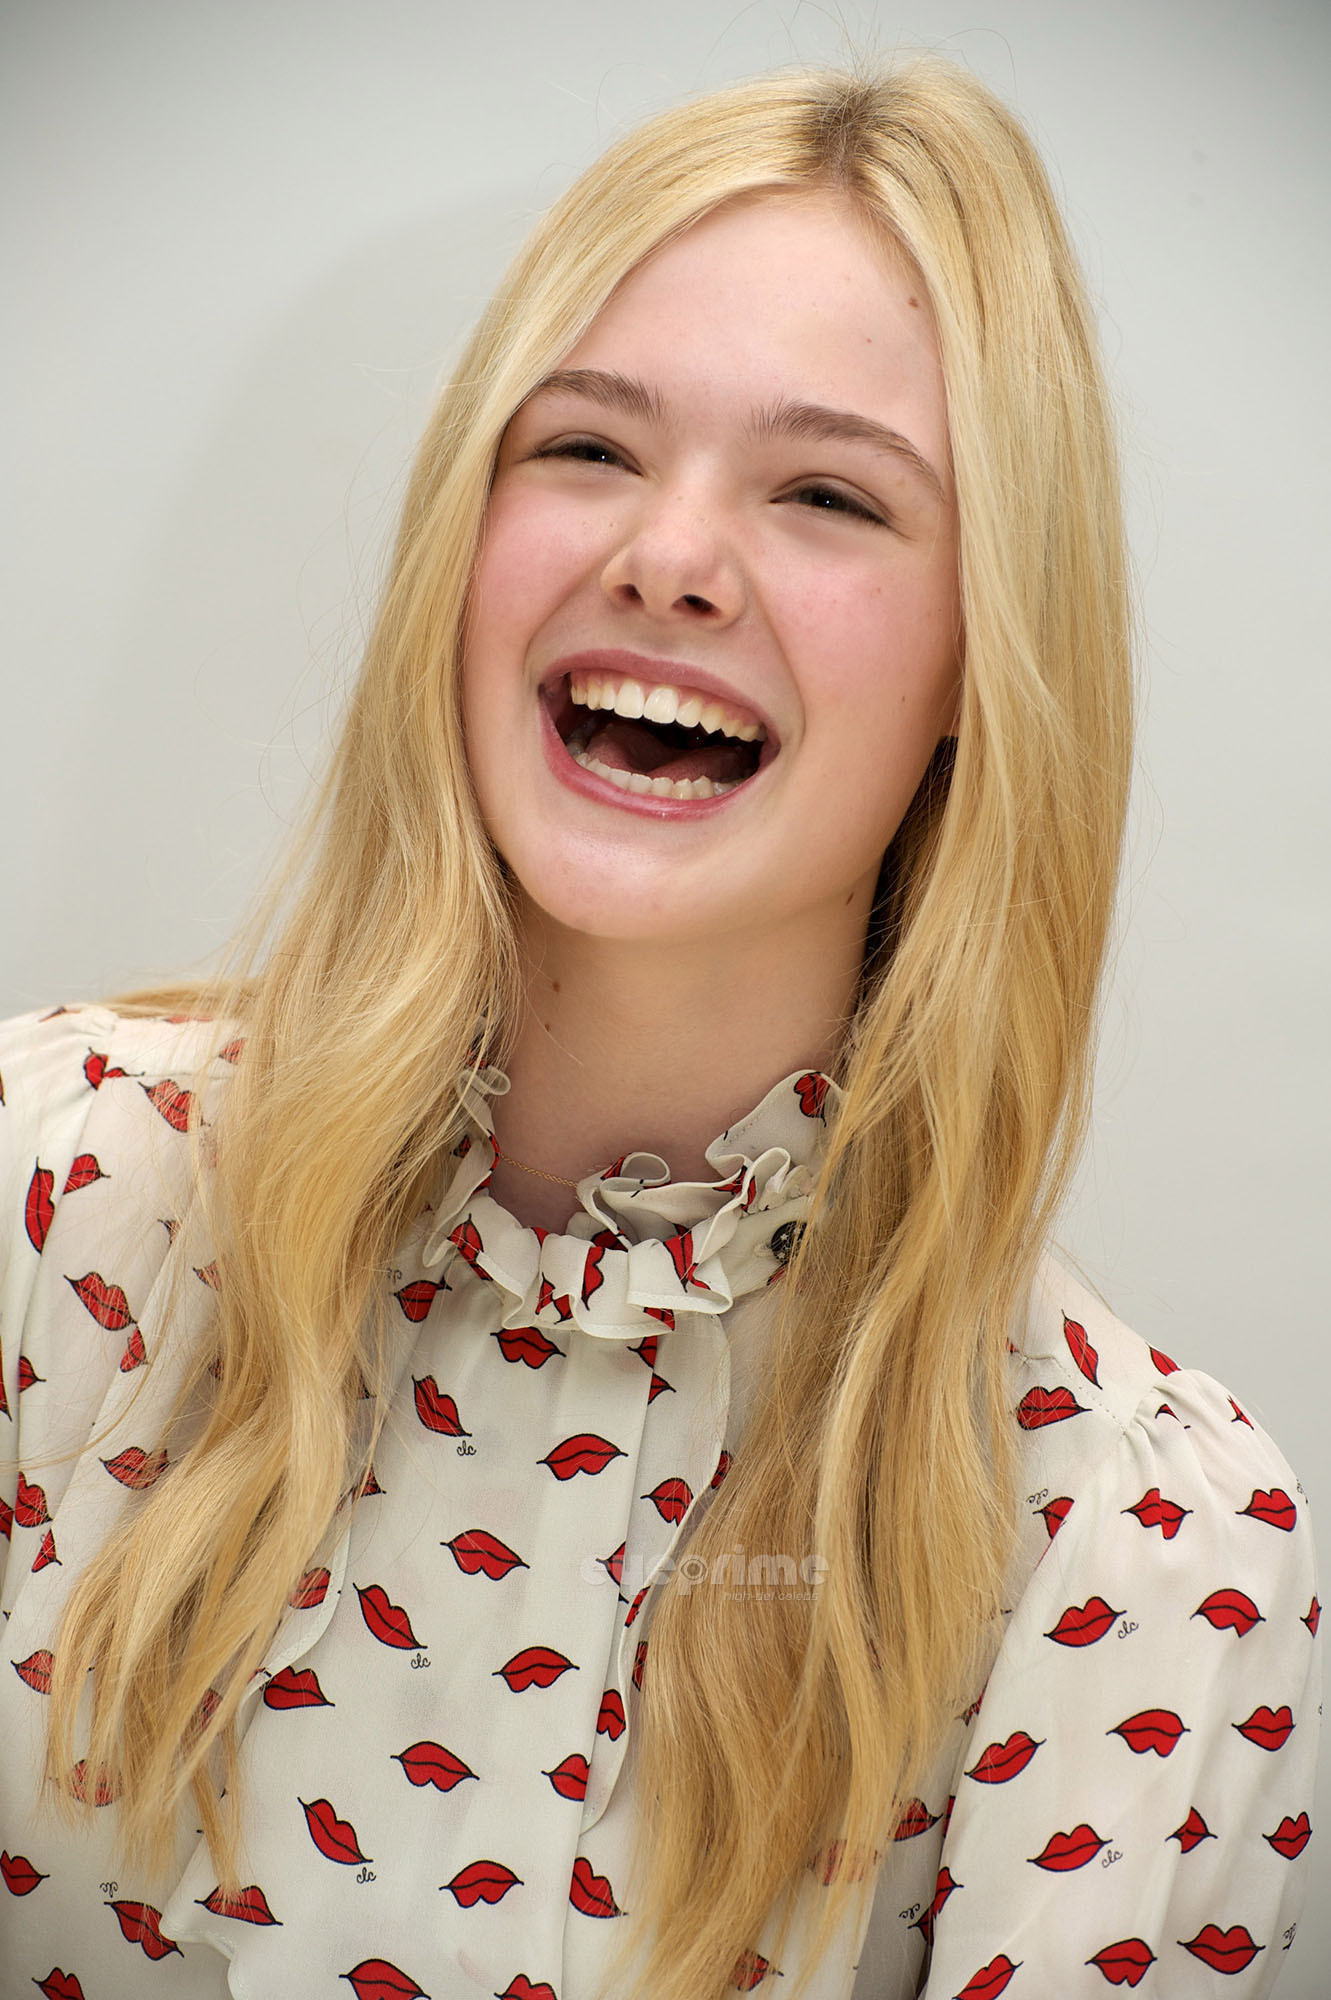 Elle Fanning HQ http://www.fanpop.com/clubs/elle-fanning/images/22309161/title/elle-fanning-press-conference-photo